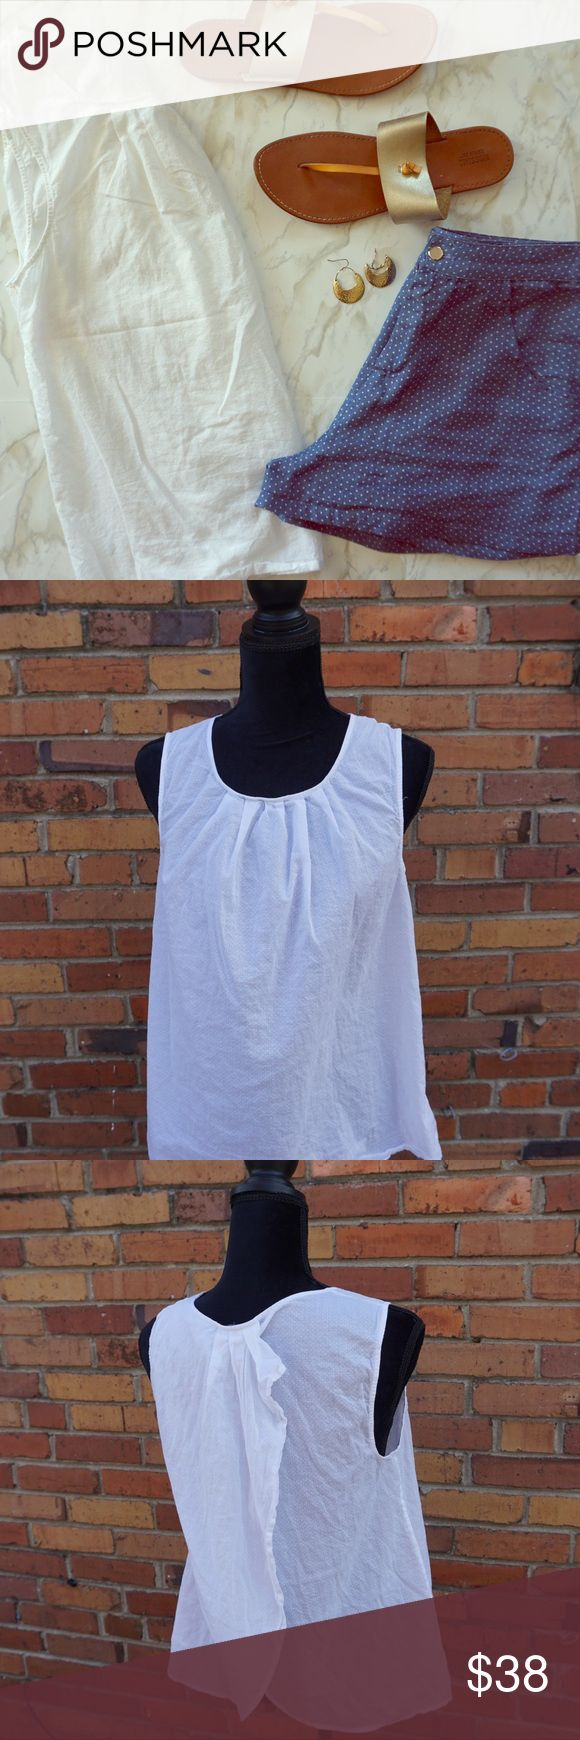 *HP* Anthropologie White Tulip Back Swiss Dot Tank Nothing says summer like a white tank top and this one is the perfect addition to your closet.  The tulip back is fun and flirty and the subtle white on white pools fit fabric makes the it unique.  The fabric is light so you'll stay cool outside.  I love the wider straps because it means I can wear a regular bra and the straps won't show. In excellent condition with no tears or stains. Anthropologie Tops Tank Tops